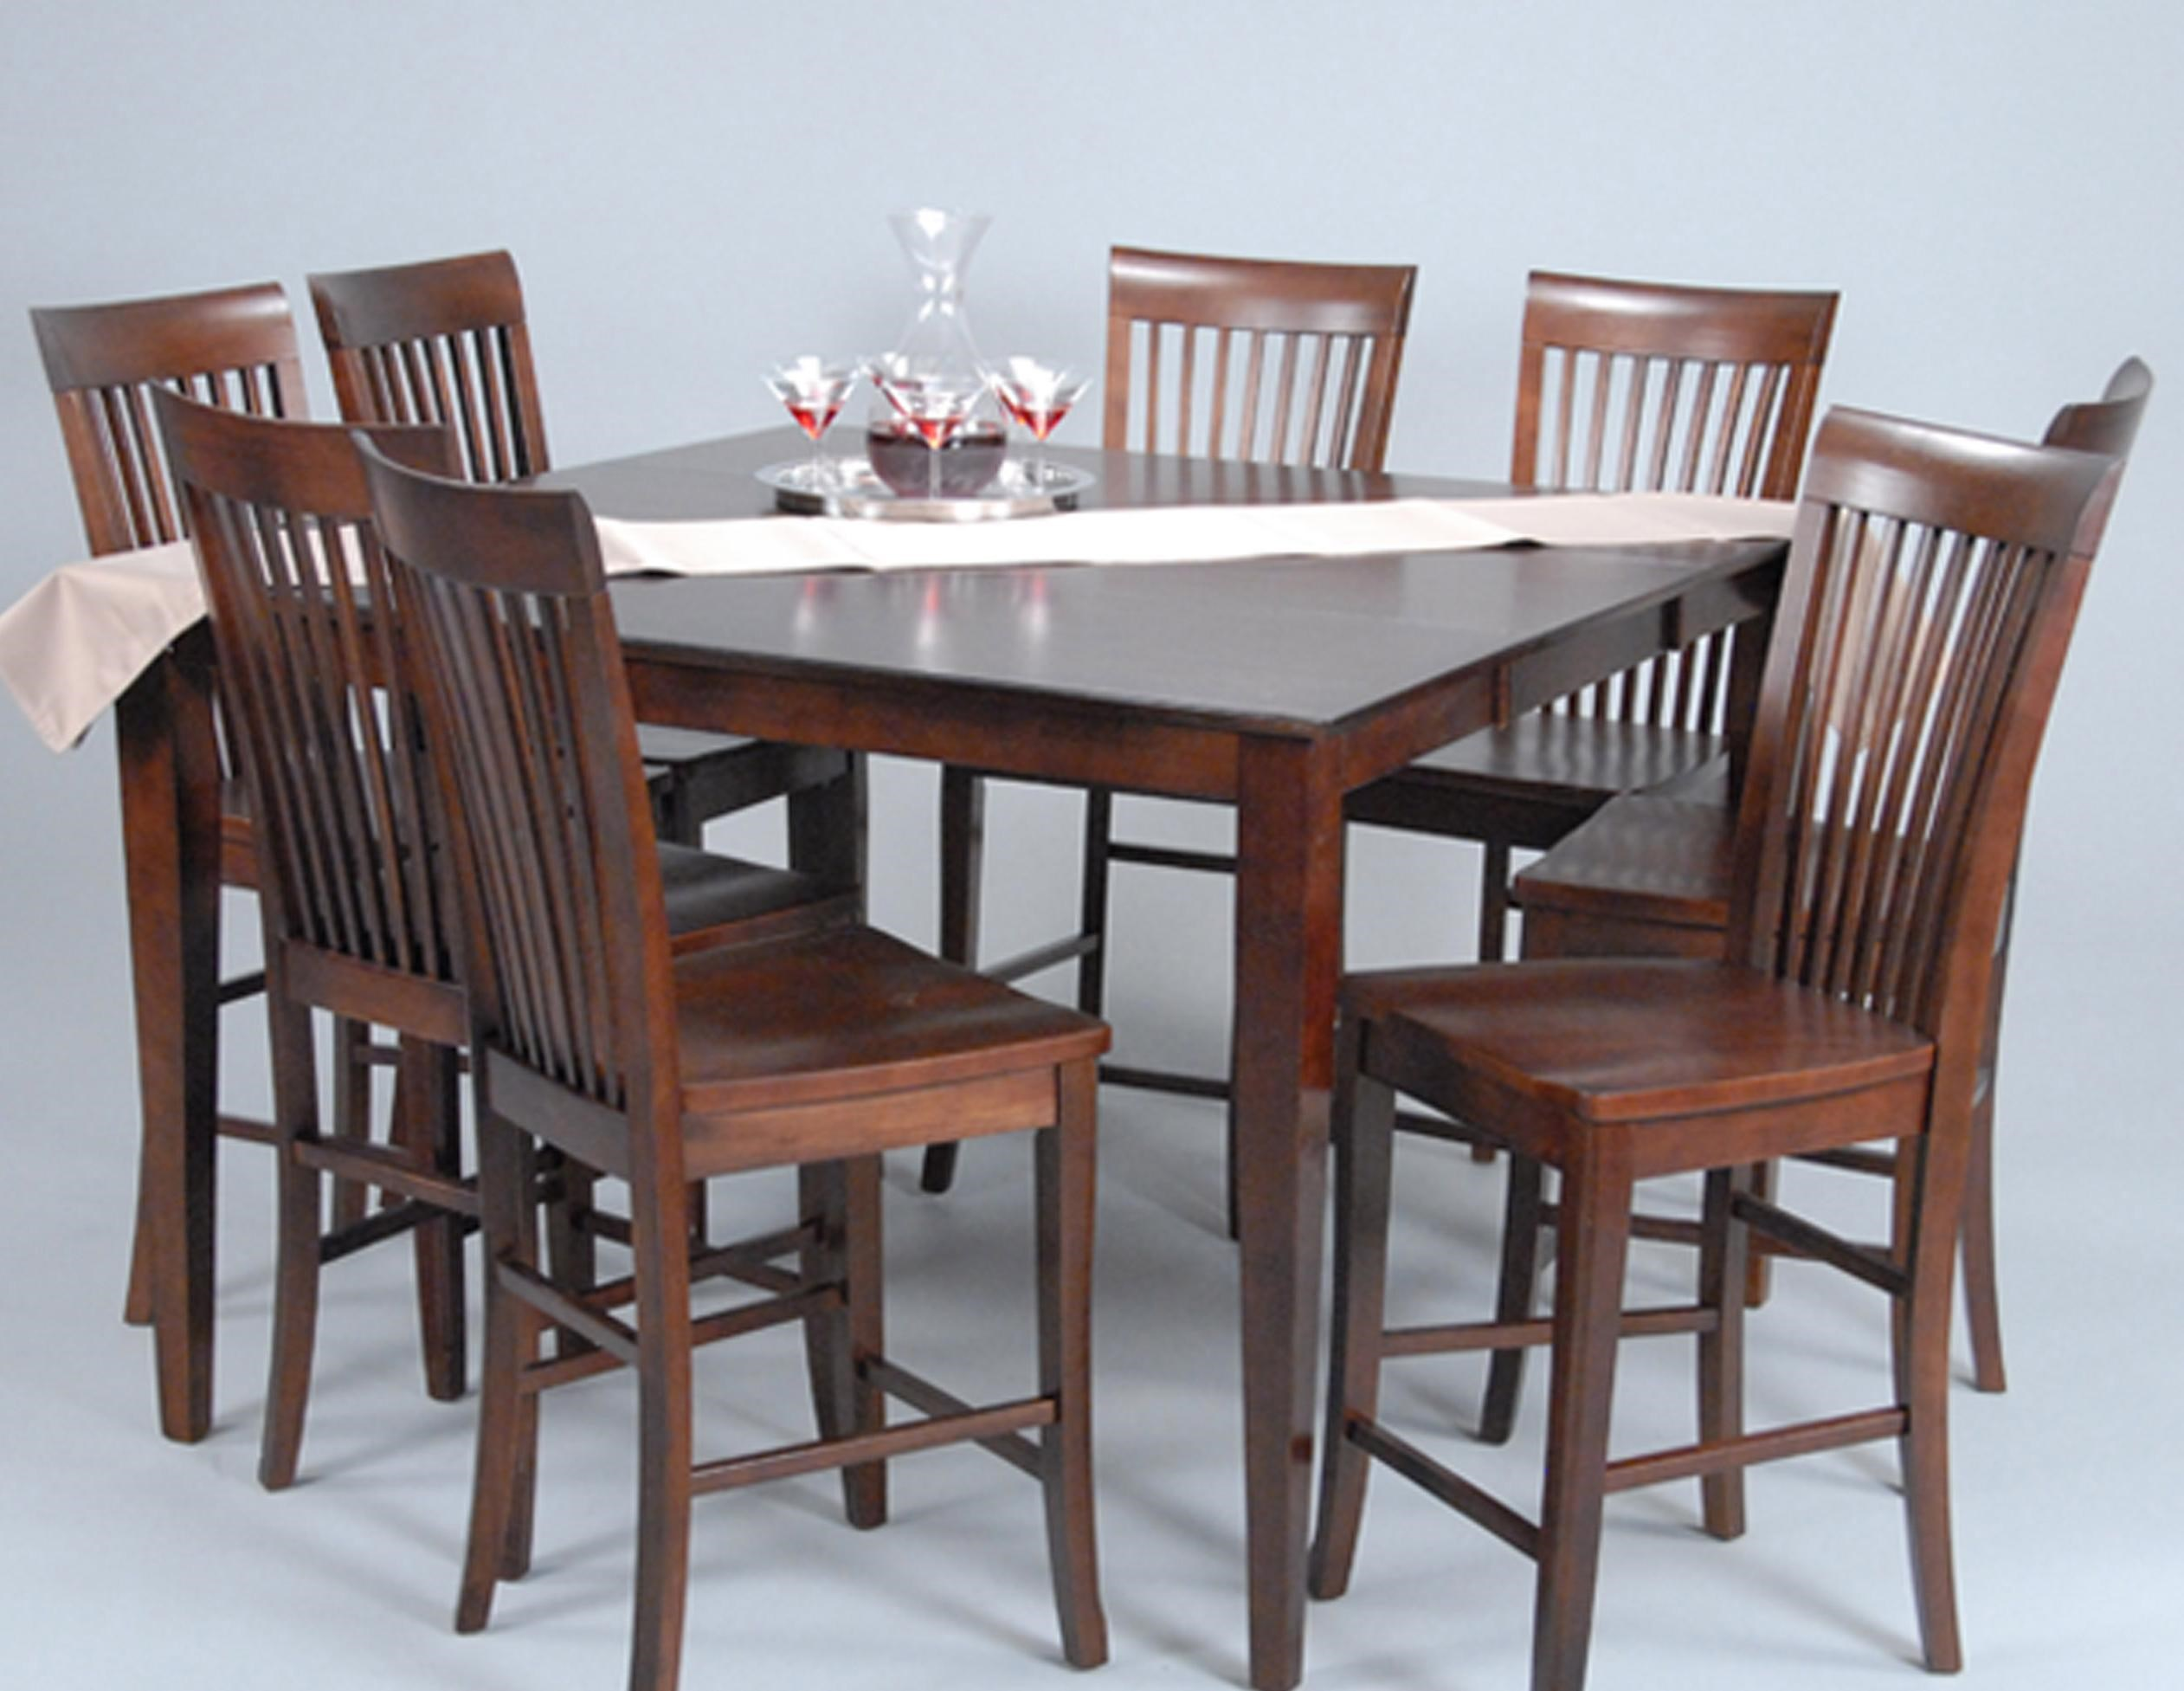 Attractive Ligo Products Contemporary Contemporary Counter Height Table And Stool  Dining Set